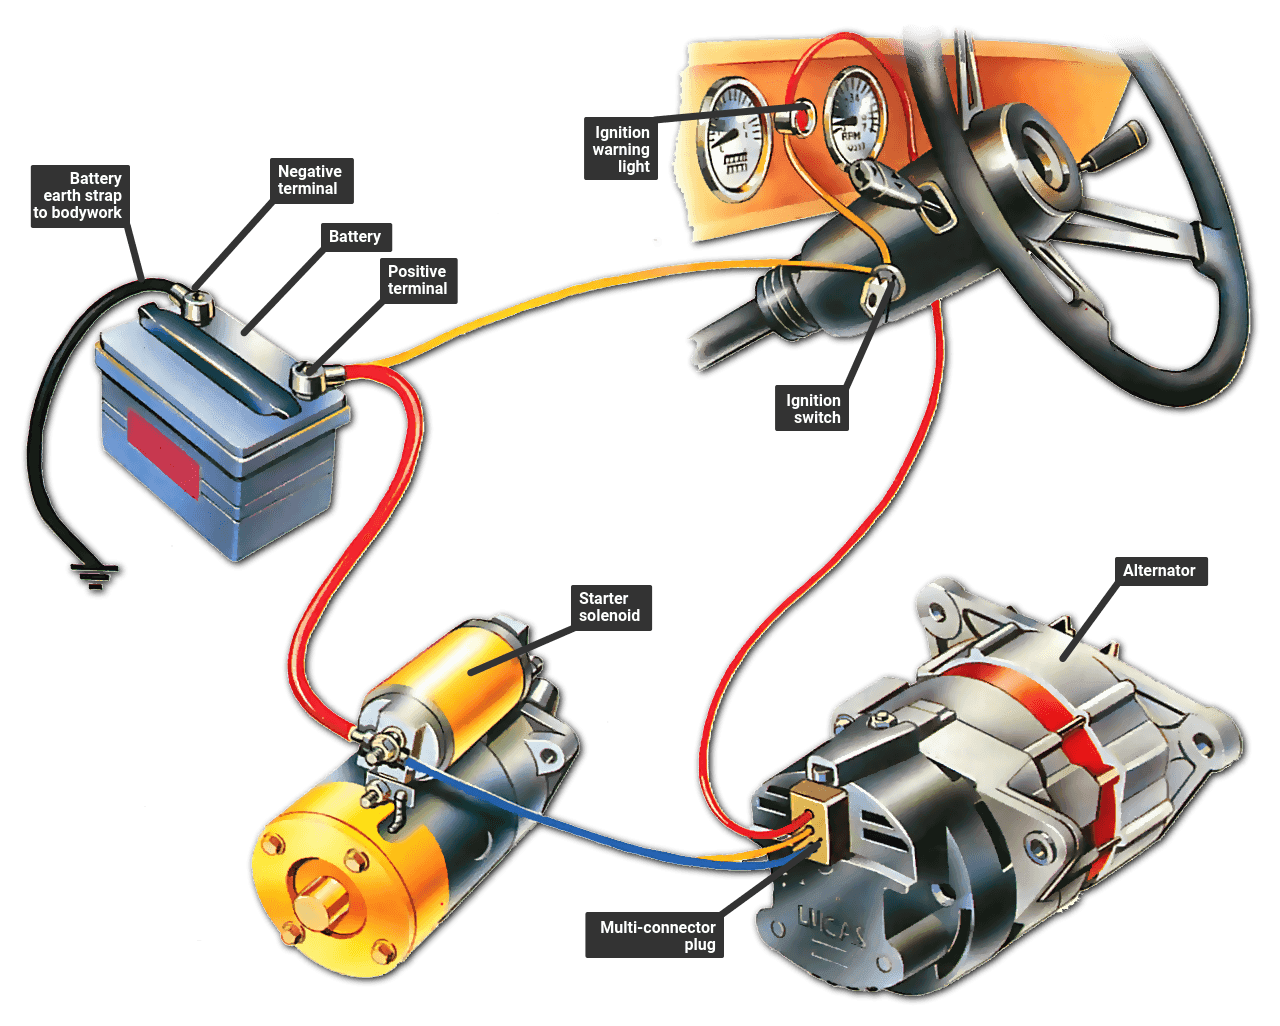 Troubleshooting The Ignition Warning Light How A Car Works Pontiac Alternator Wiring Diagram